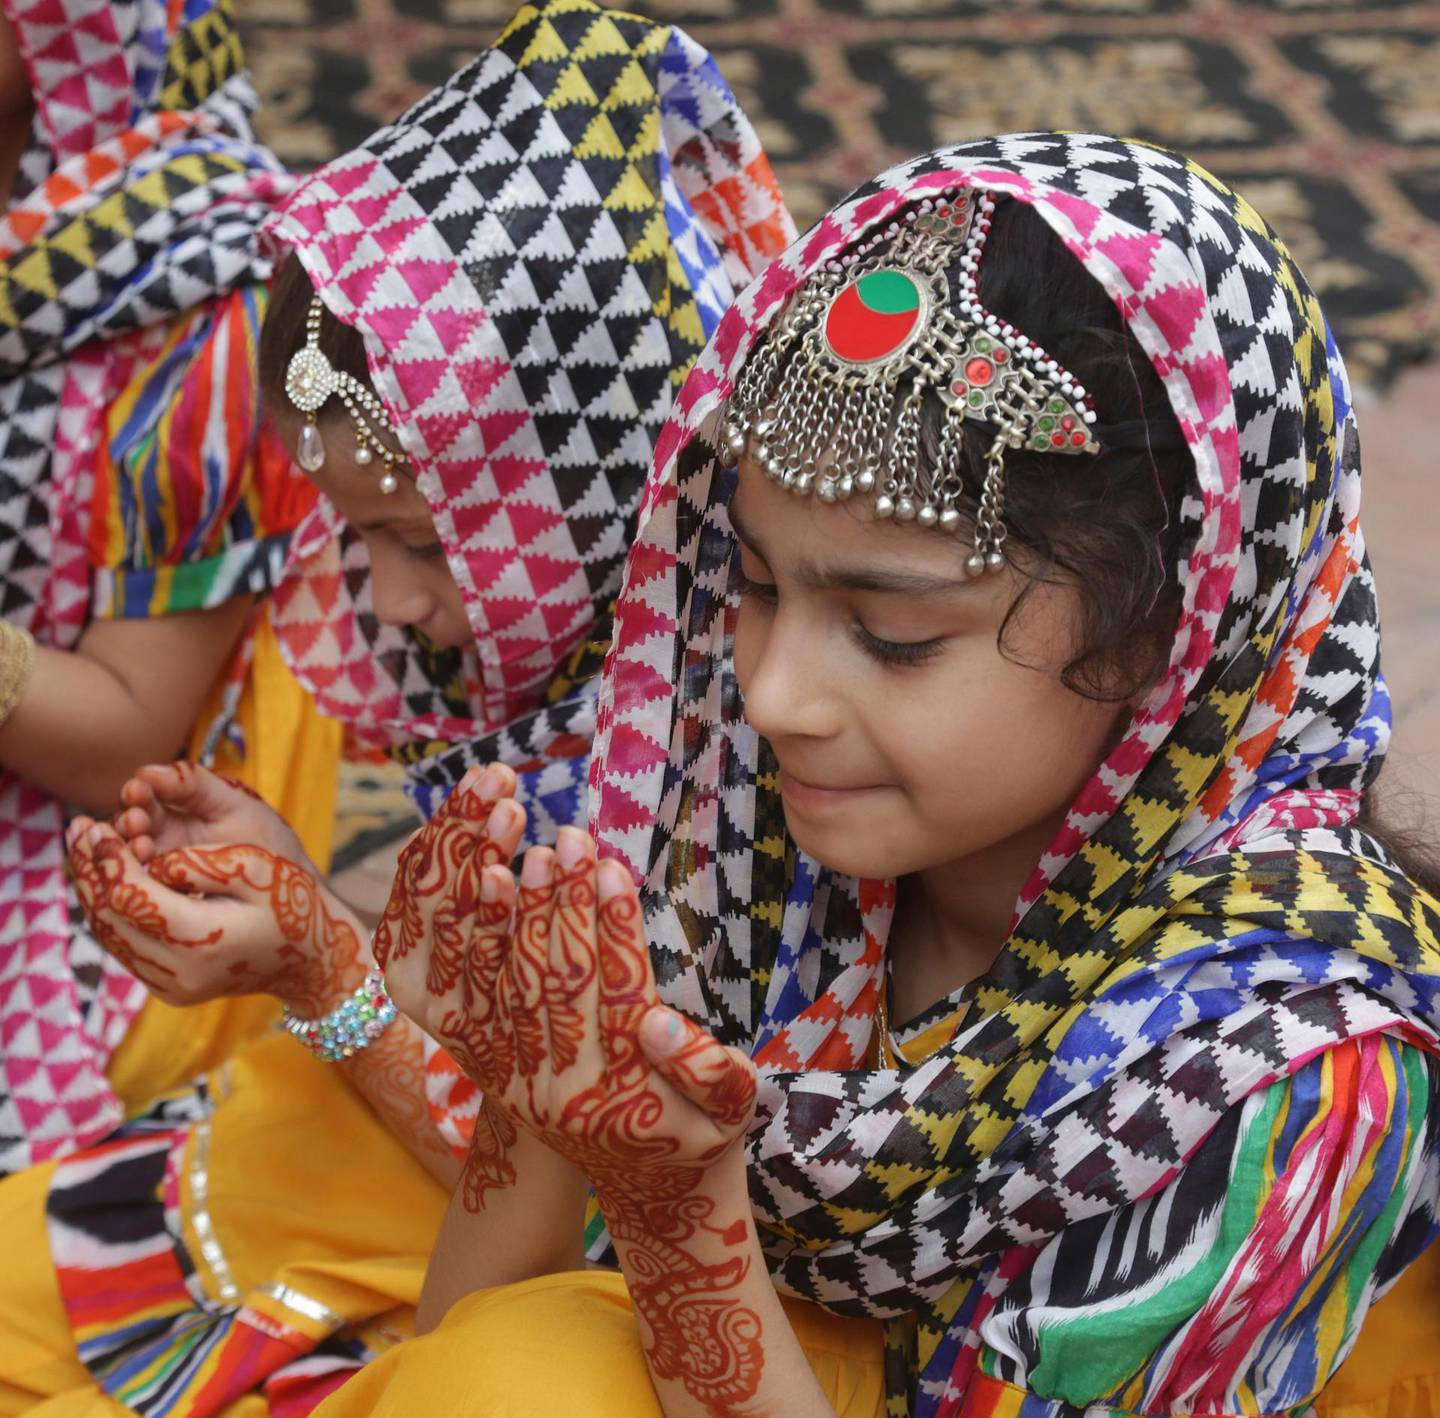 Pakistani girls, with their hands decorated with henna, pray during the Eid al-Adha holiday, in Lahore Pakistan, Wednesday, Aug. 22, 2018. Muslims around the world celebrate Eid al-Adha, or the Feast of the Sacrifice, that marks the willingness of the Prophet Ibrahim (Abraham to Christians and Jews) to sacrifice his son. During the holiday, which in most places lasts four days, Muslims slaughter sheep or cattle, distribute part of the meat to the poor and eat the rest. (AP Photo/K.M. Chaudary)